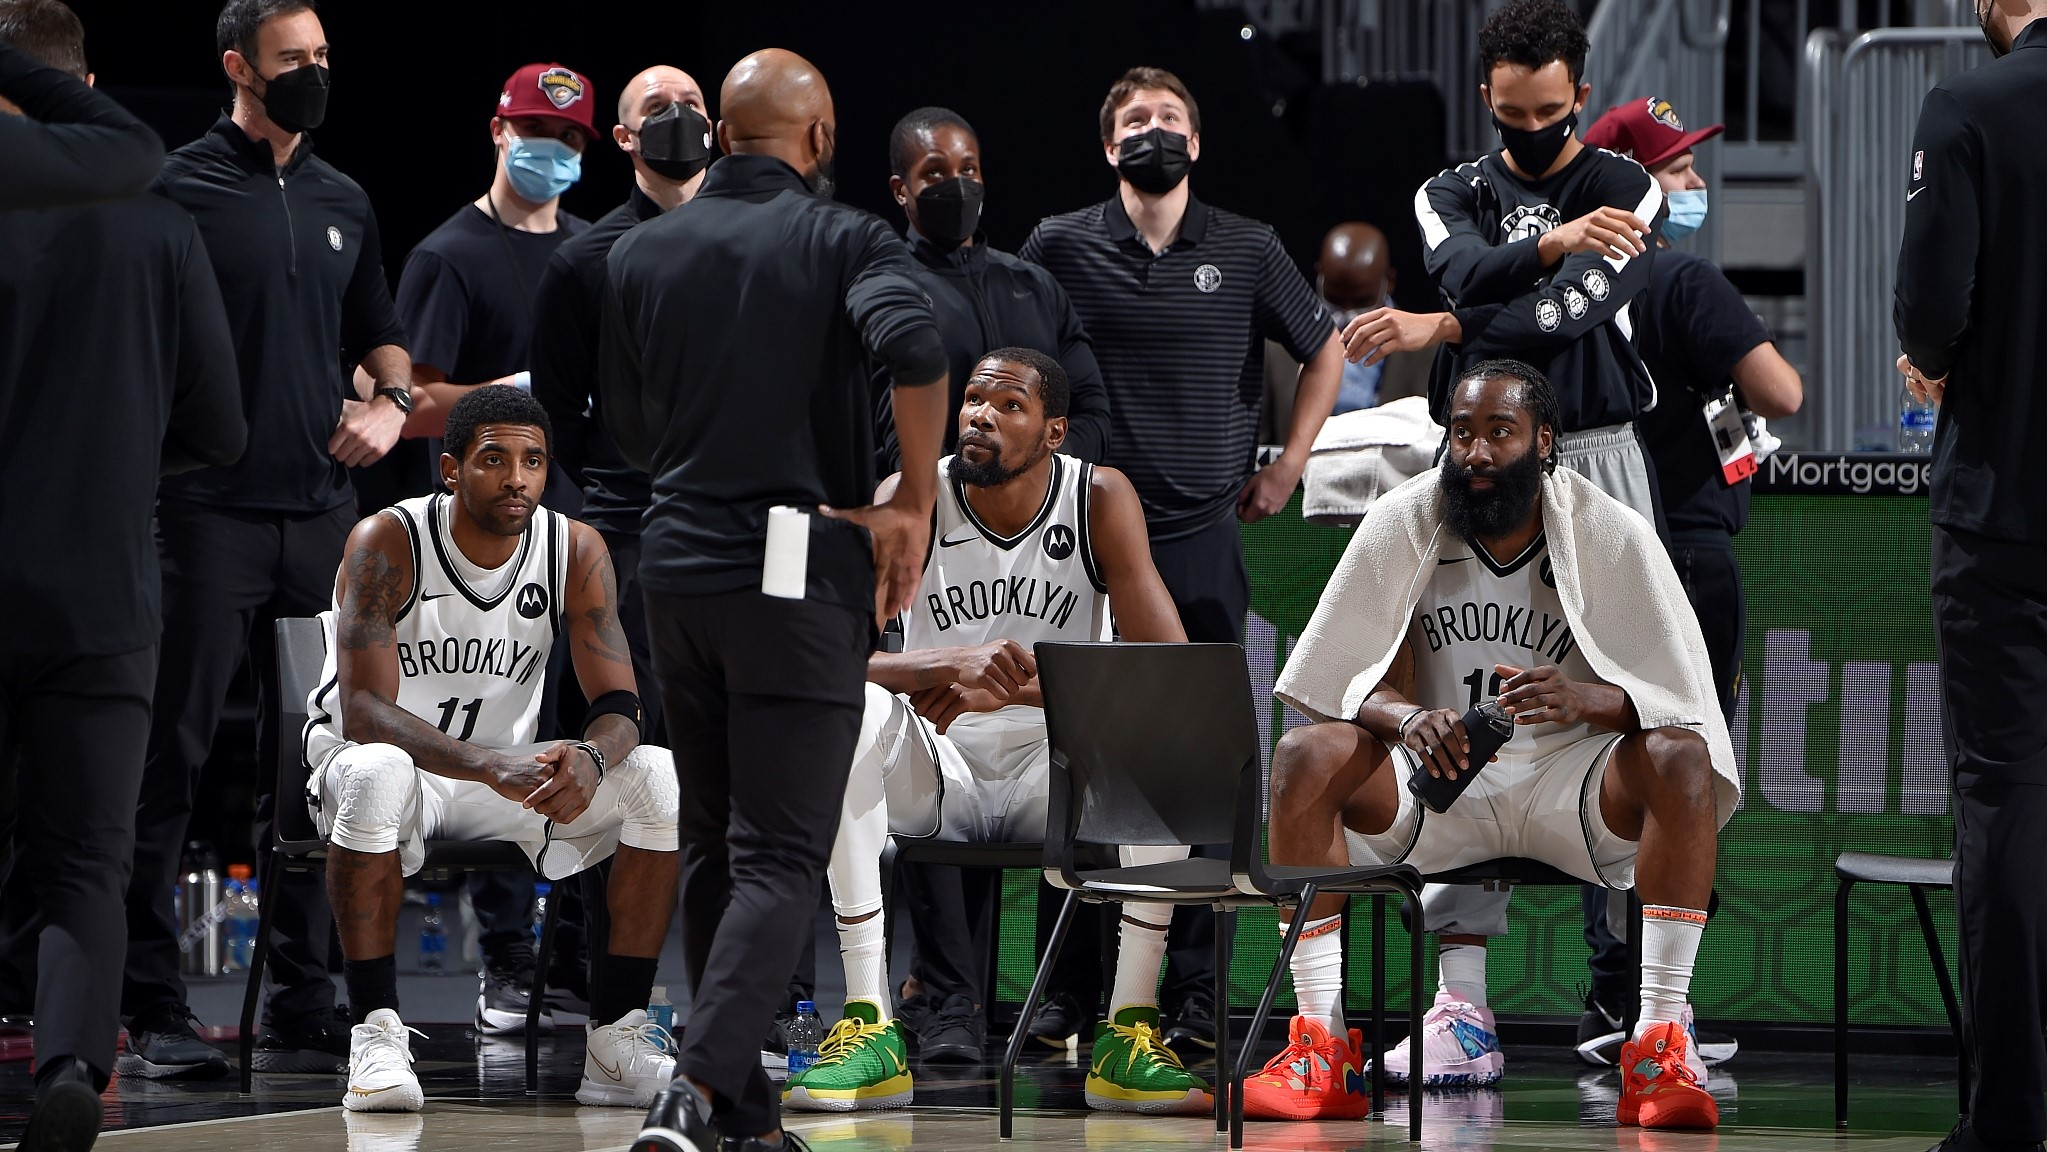 NBA highlights on Jan. 20: Nets Big 3 met, and they lost - CGTN